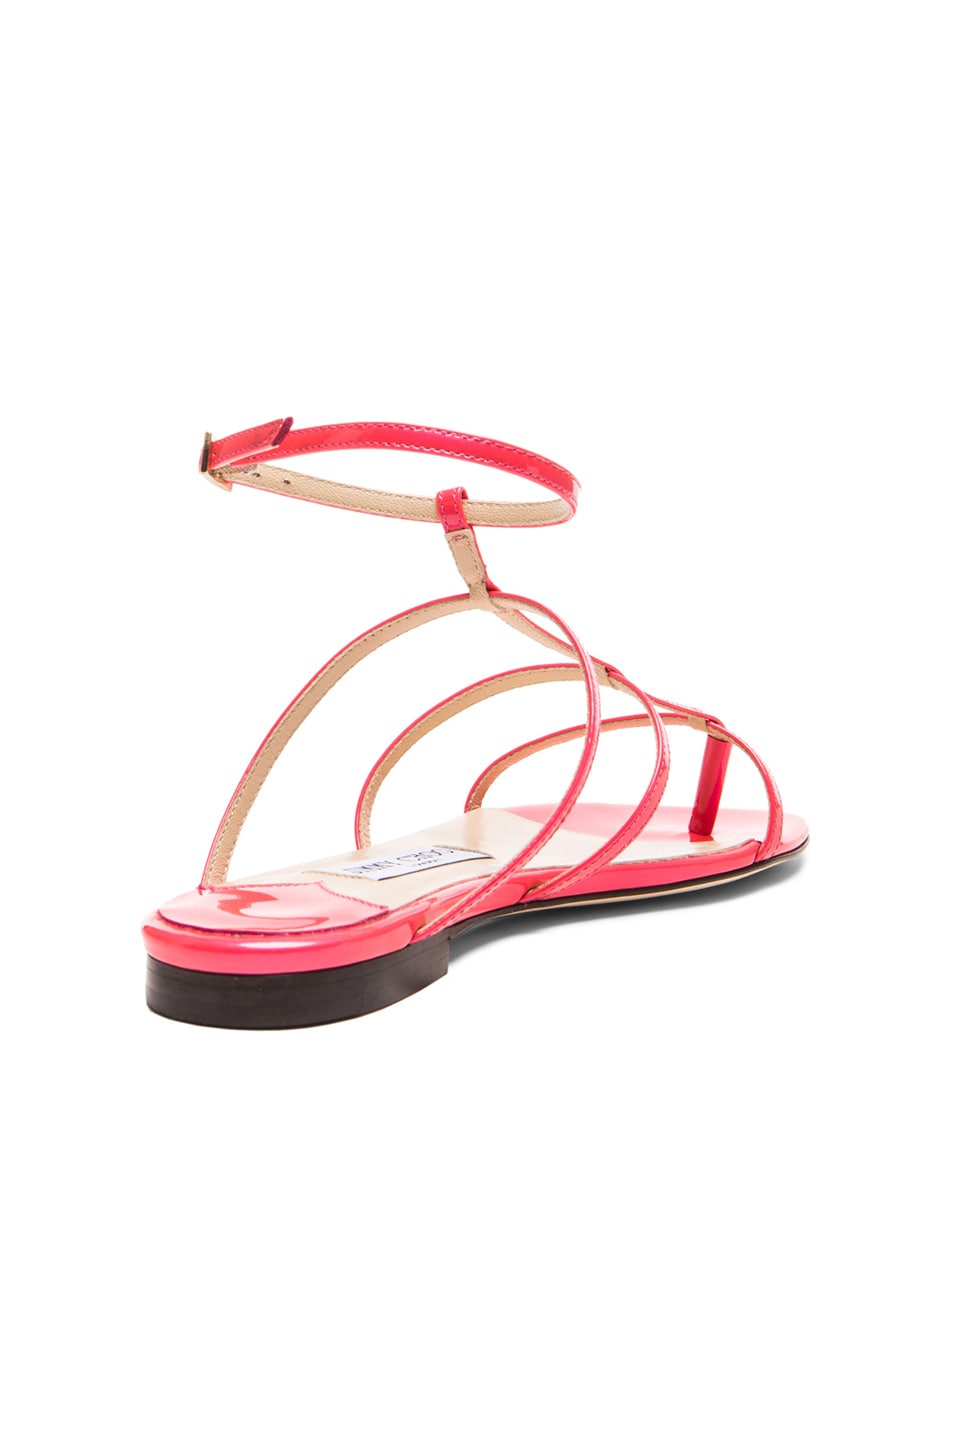 6a7030555b86c Image 3 of Jimmy Choo Doodle Patent Leather Thong Sandals in Geranium